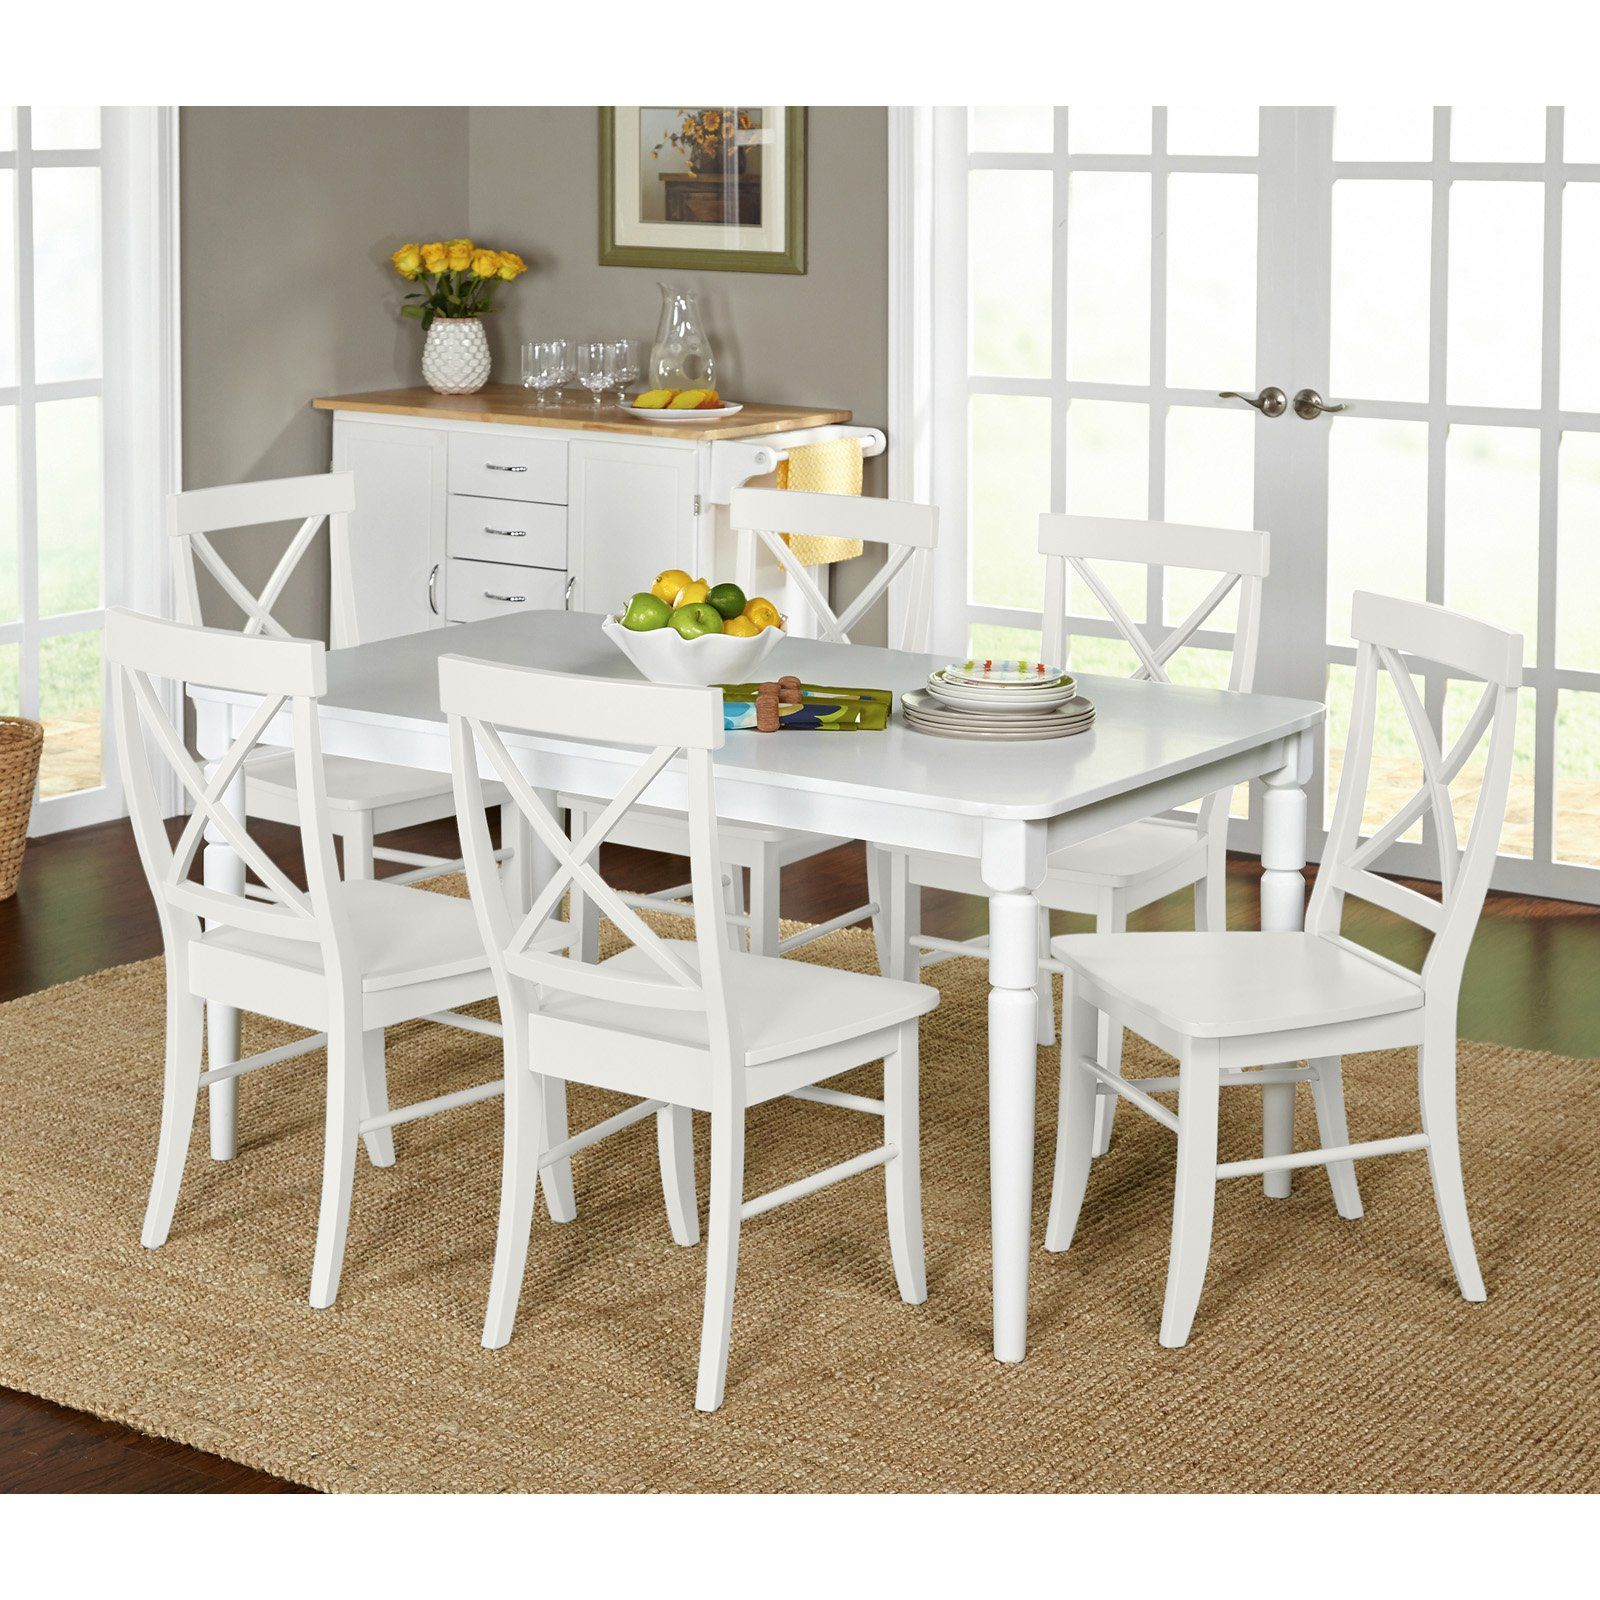 target marketing systems albury 7 piece dining table set in 2019 rh pinterest com